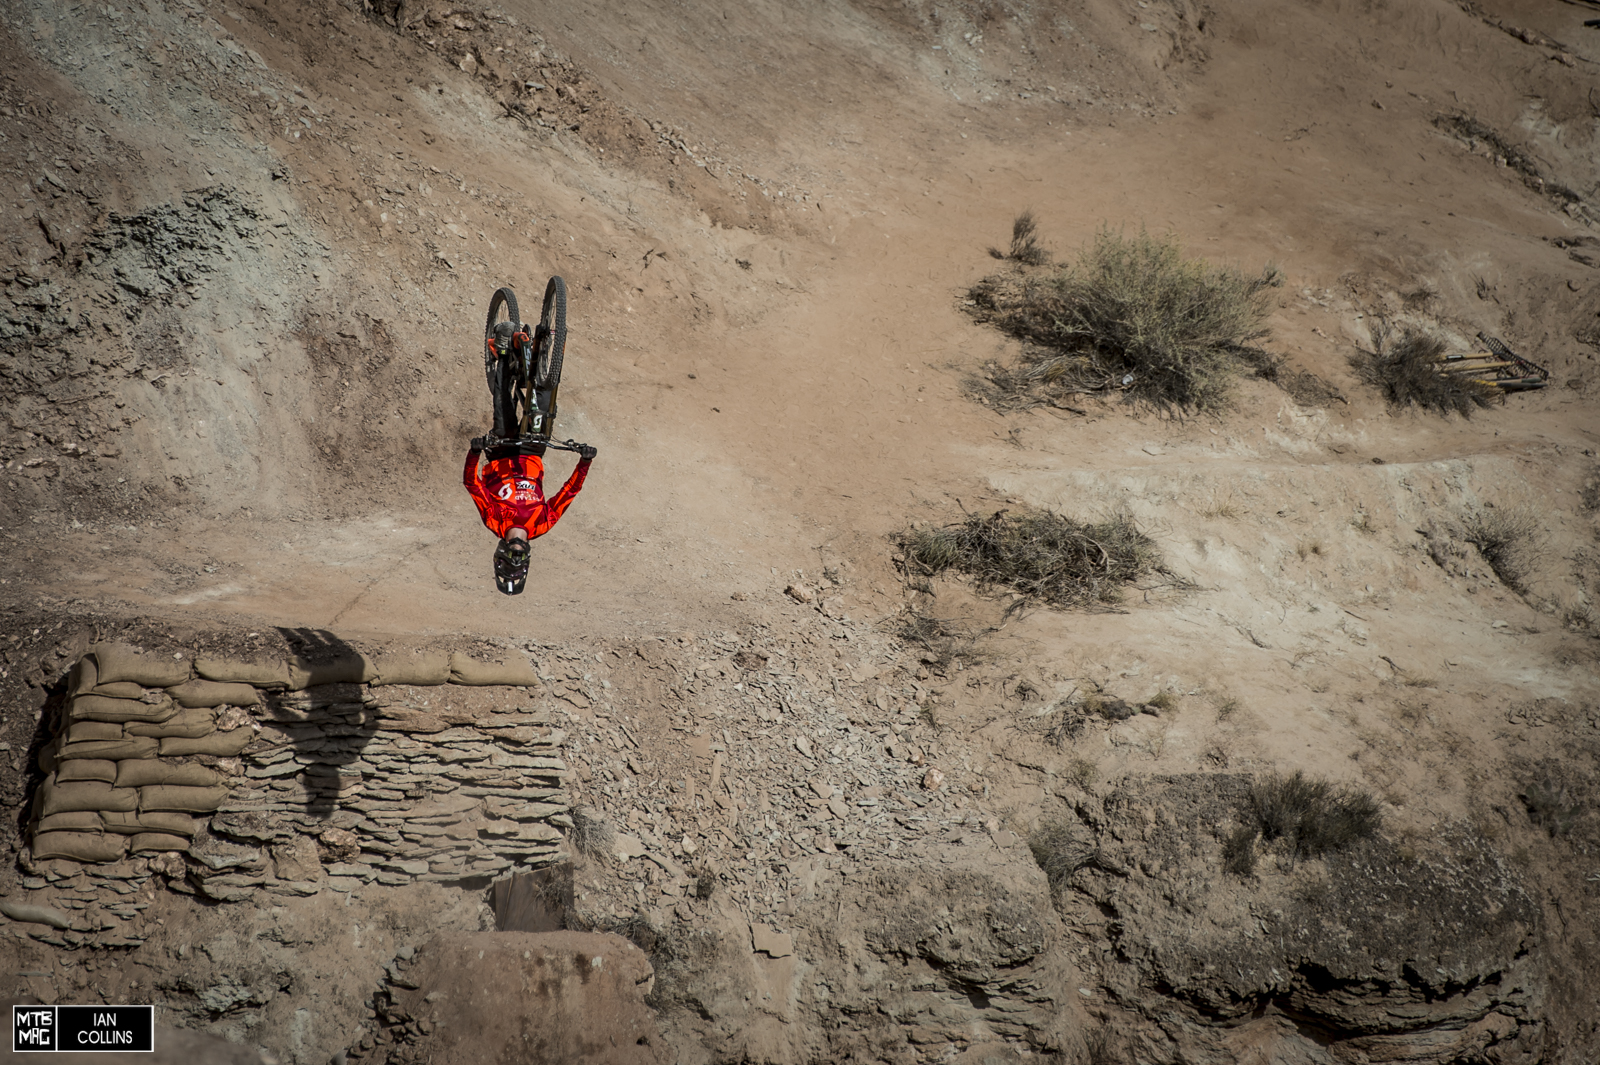 Last year, Fairclough fully expected to flip the second of his THREE canyon gaps. This year he greased it. We're still scratching our heads and wondering how Berrecloth's run ousted his.